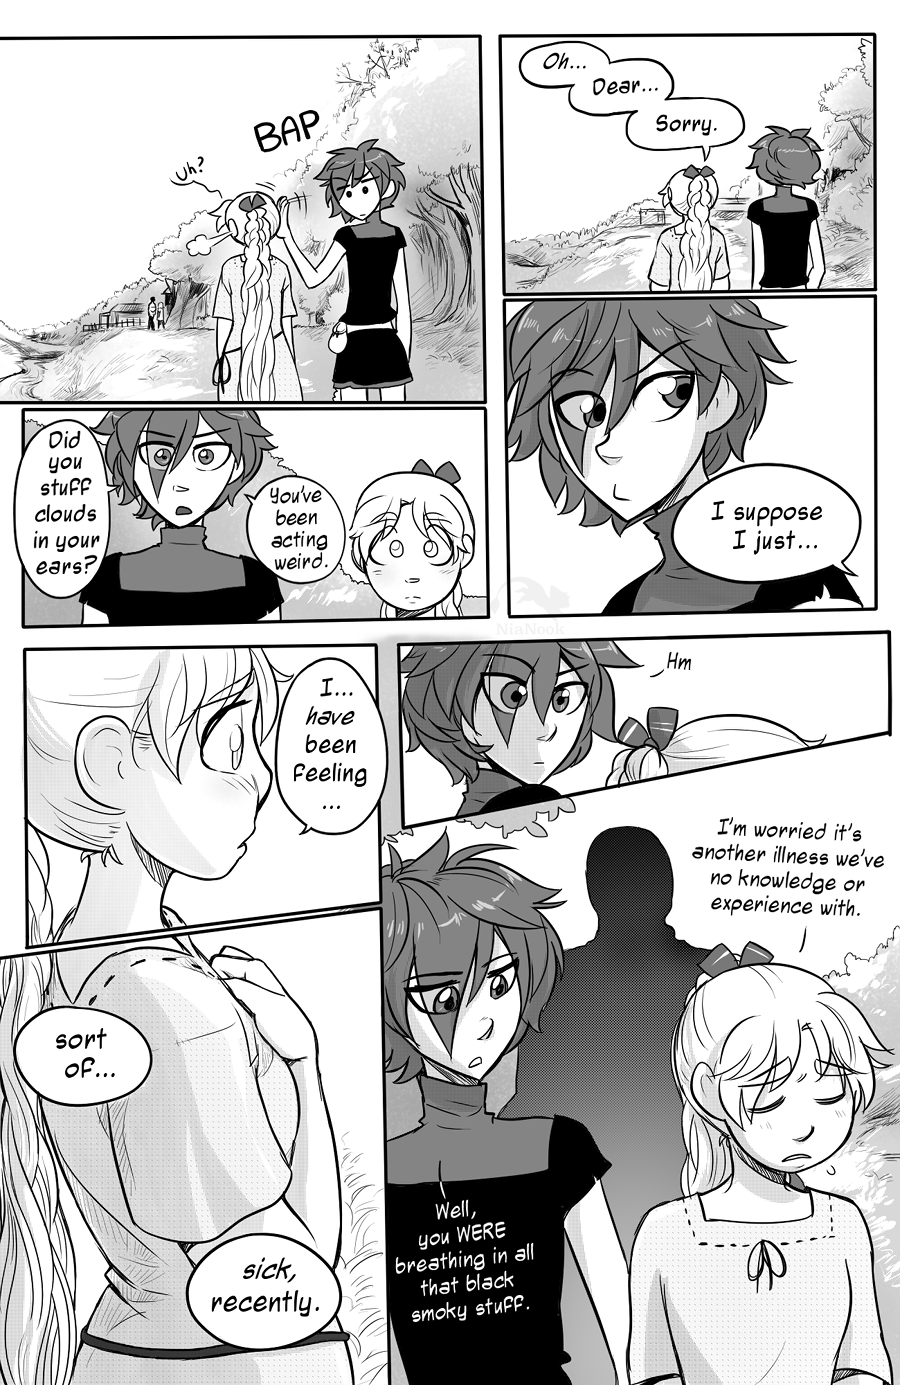 Page 31 (Book 4)